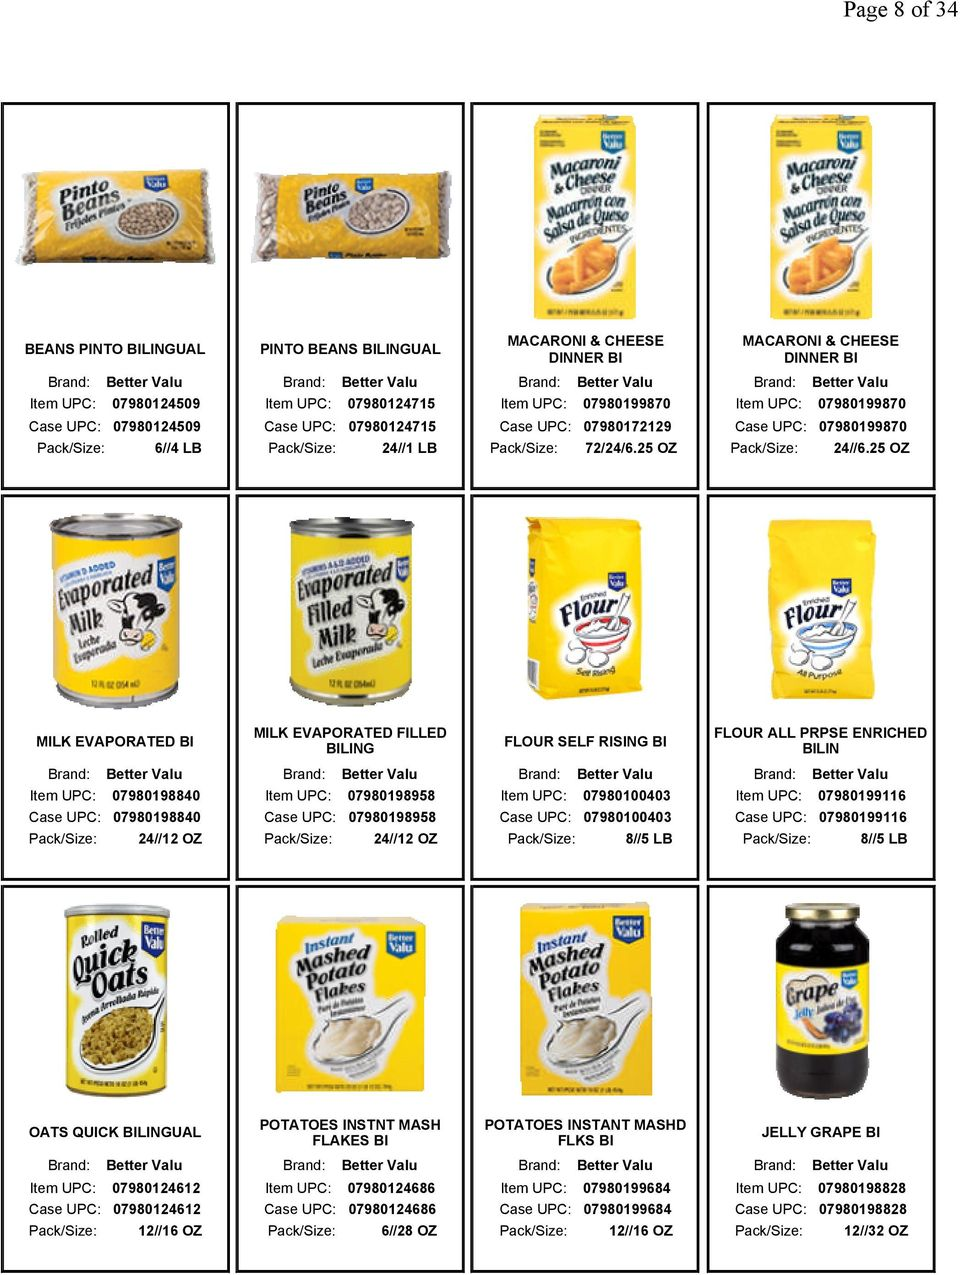 25 OZ MILK EVAPORATED MILK EVAPORATED FILLED FLOUR SELF RISING FLOUR ALL PRPSE ENRICHED LIN Item UPC: 07980198840 Item UPC: 07980198958 Item UPC: 07980100403 Item UPC: 07980199116 Case UPC: